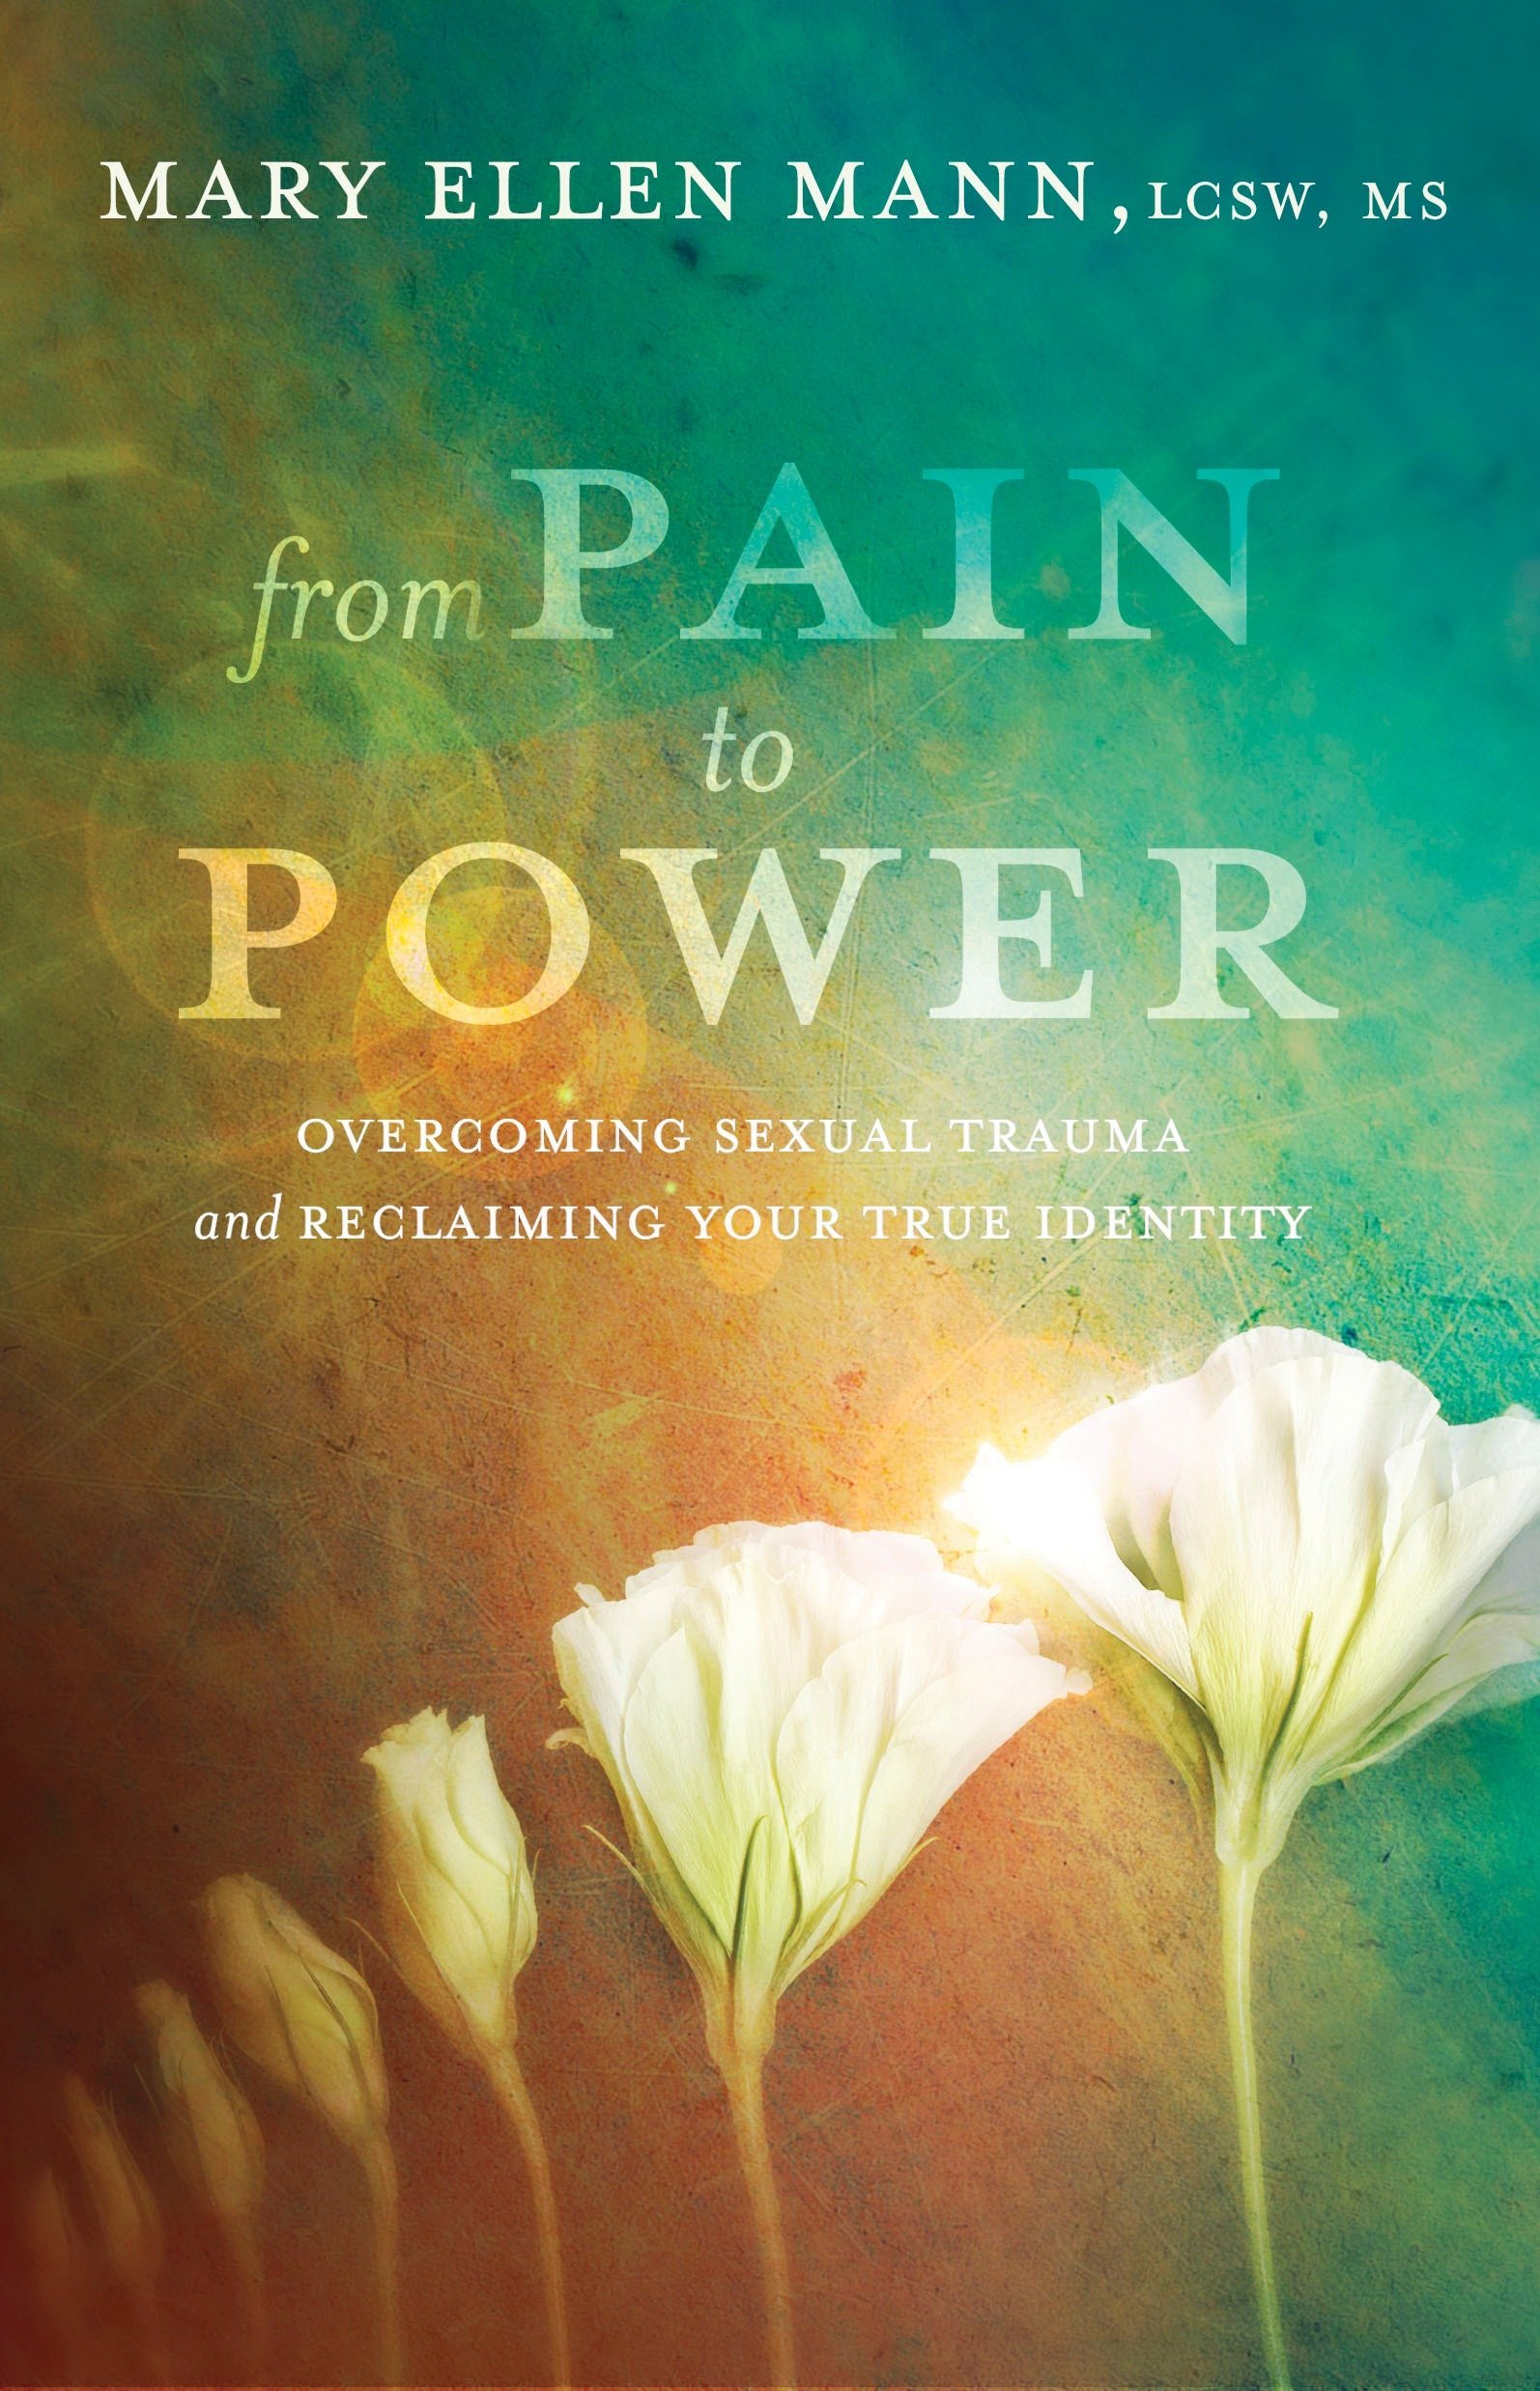 From Pain to Power: Overcoming Sexual Trauma and